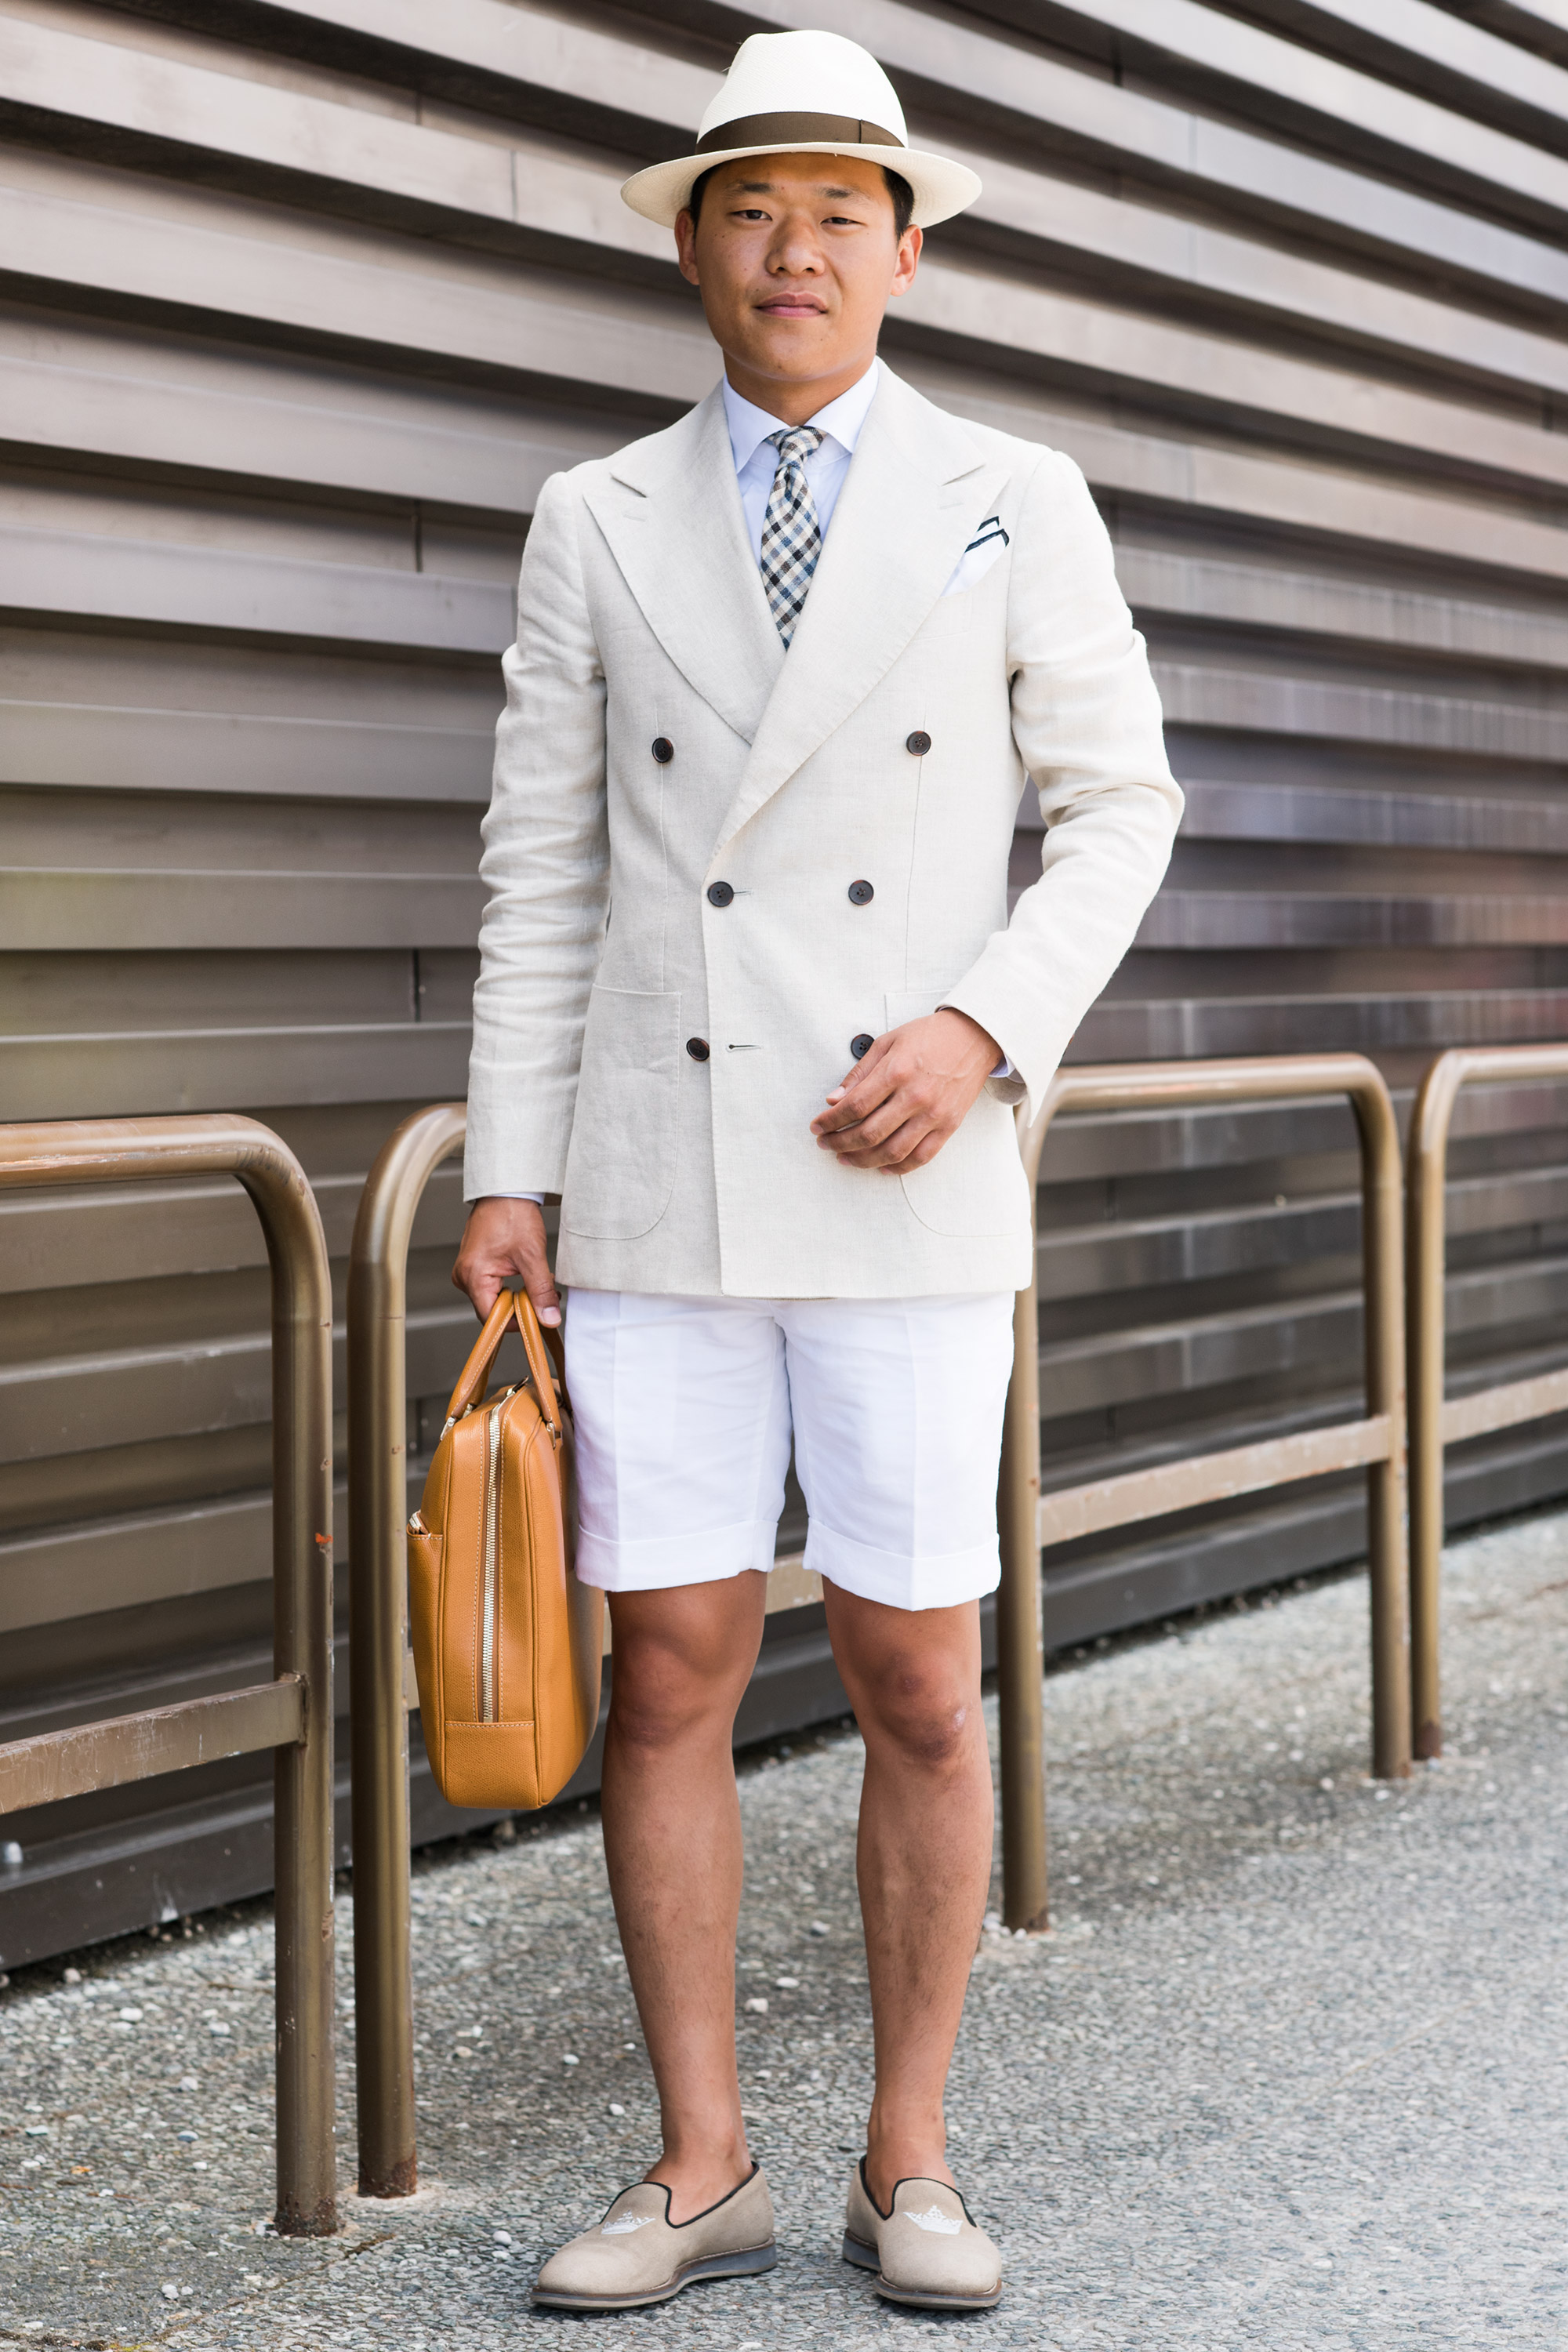 Kim Hat: Borsalino Jacket, tie and shirt: Suit Supply Shorts: Incotex Shoes: Church's Bag: Valextra  Cheapest: My shorts Oldest piece: my hat  Inspiration: I wanted a soft color palette(我想要一种轻柔的色调)